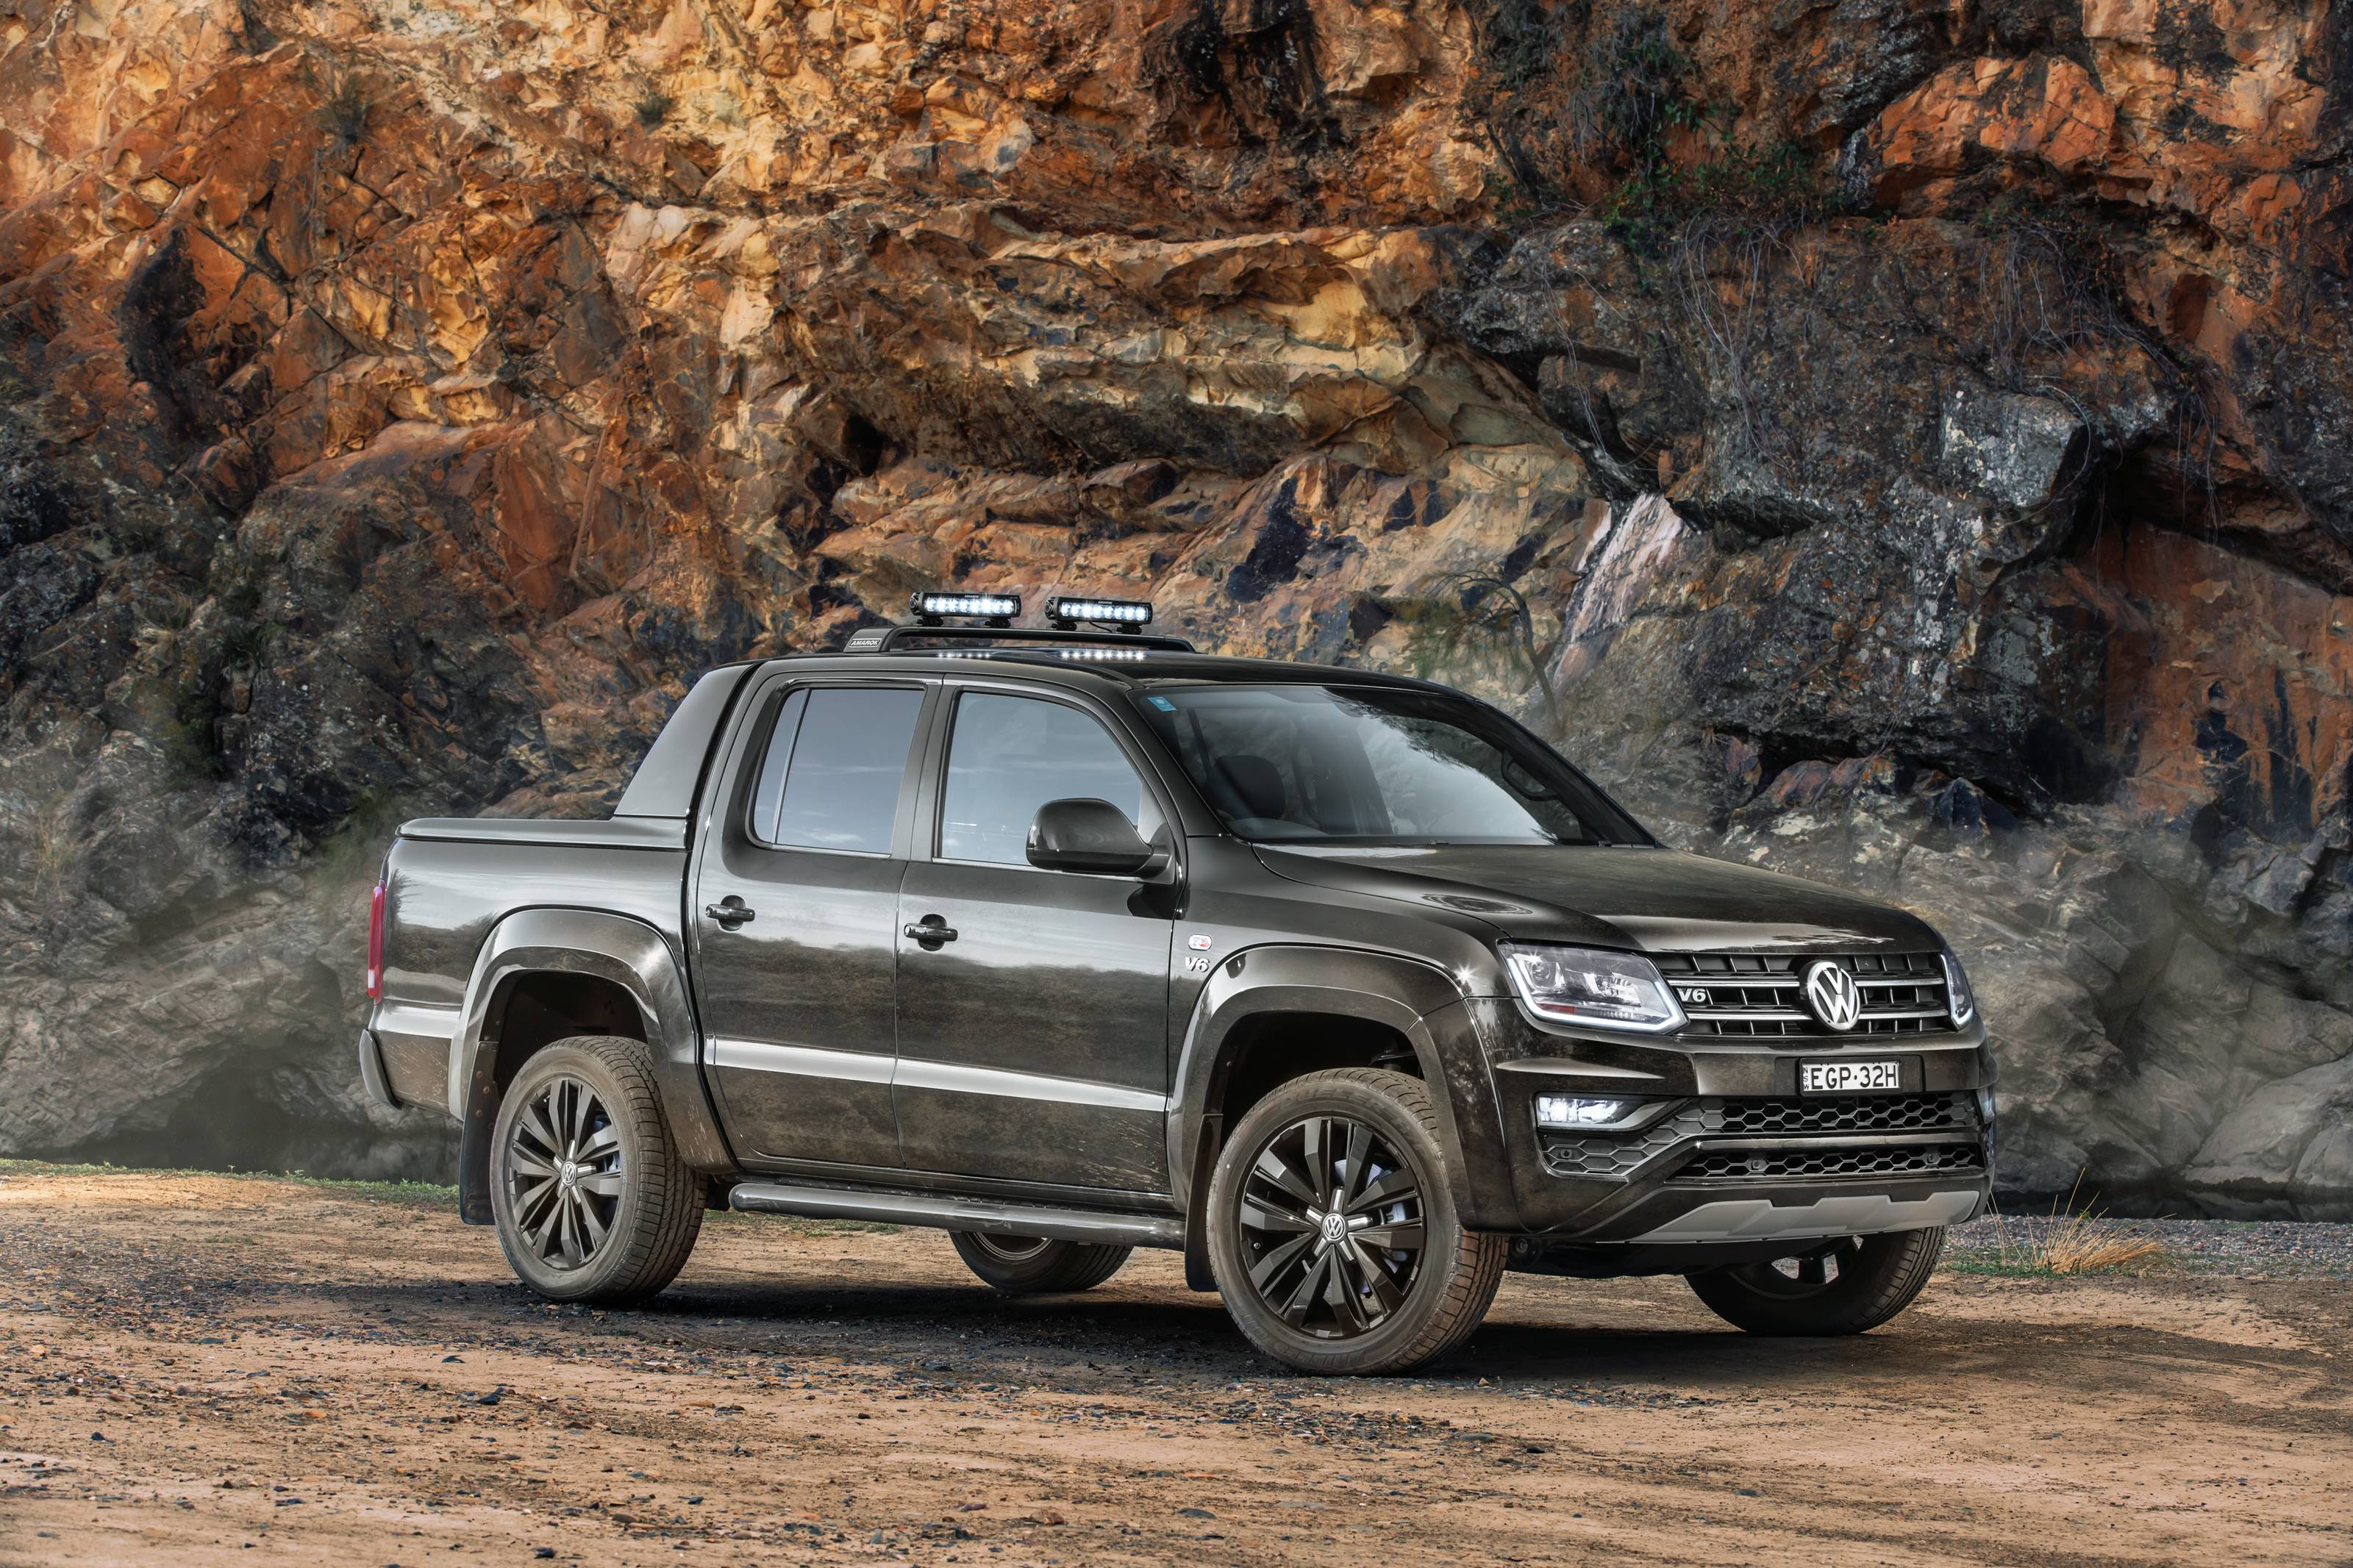 Ford-Wagen: Ford and VW Are Teaming Up On  The Next Generation Of Ranger – Built VW Tough?